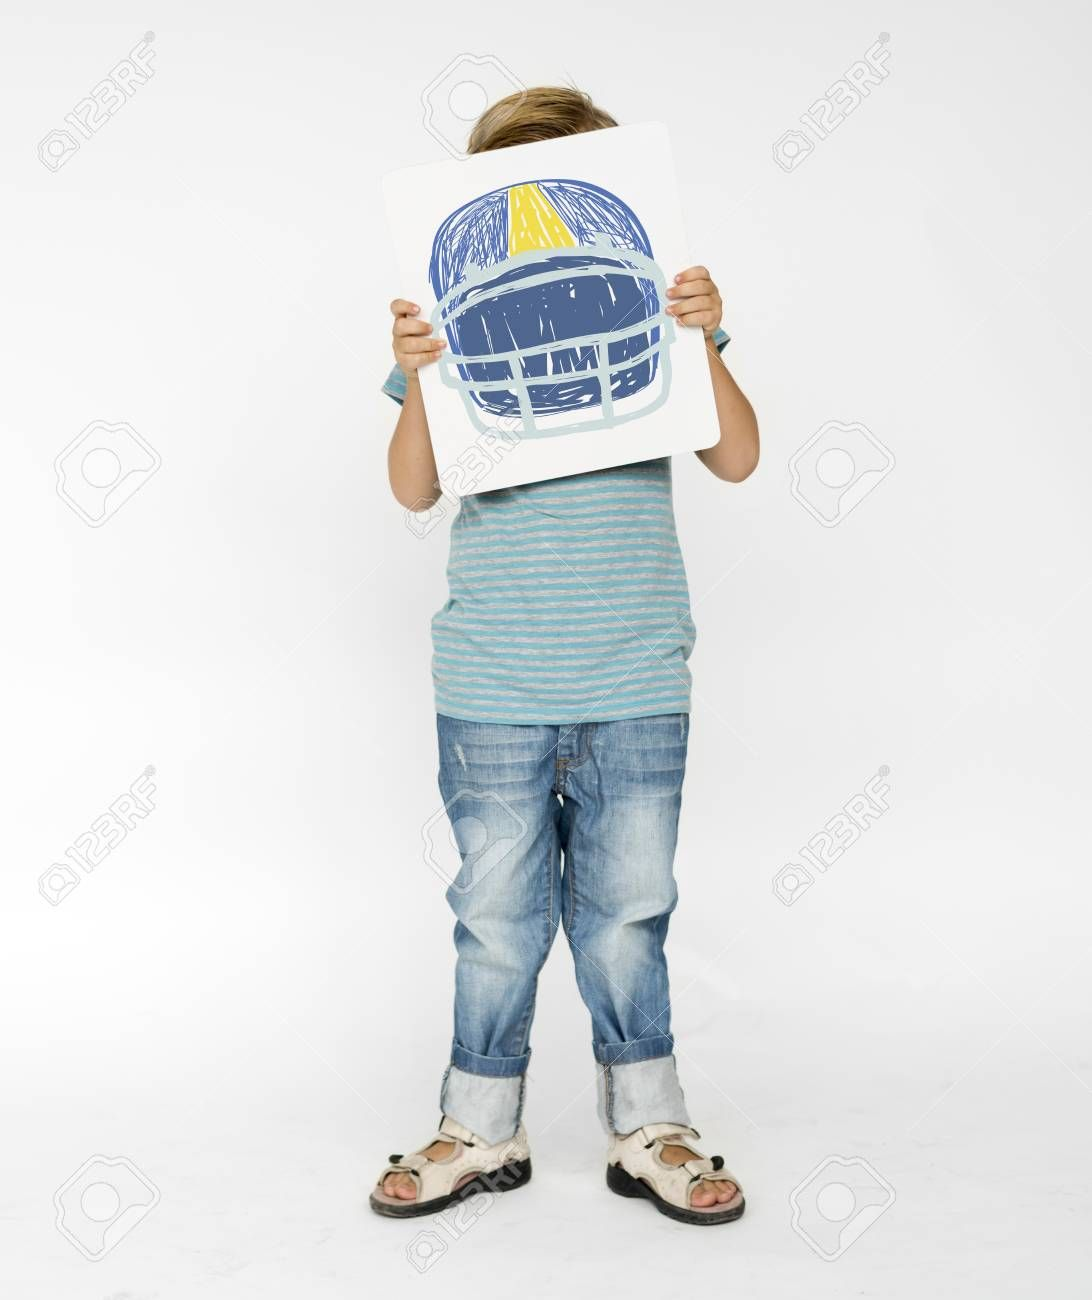 Children with a drawing of American football helmet Stock Photo